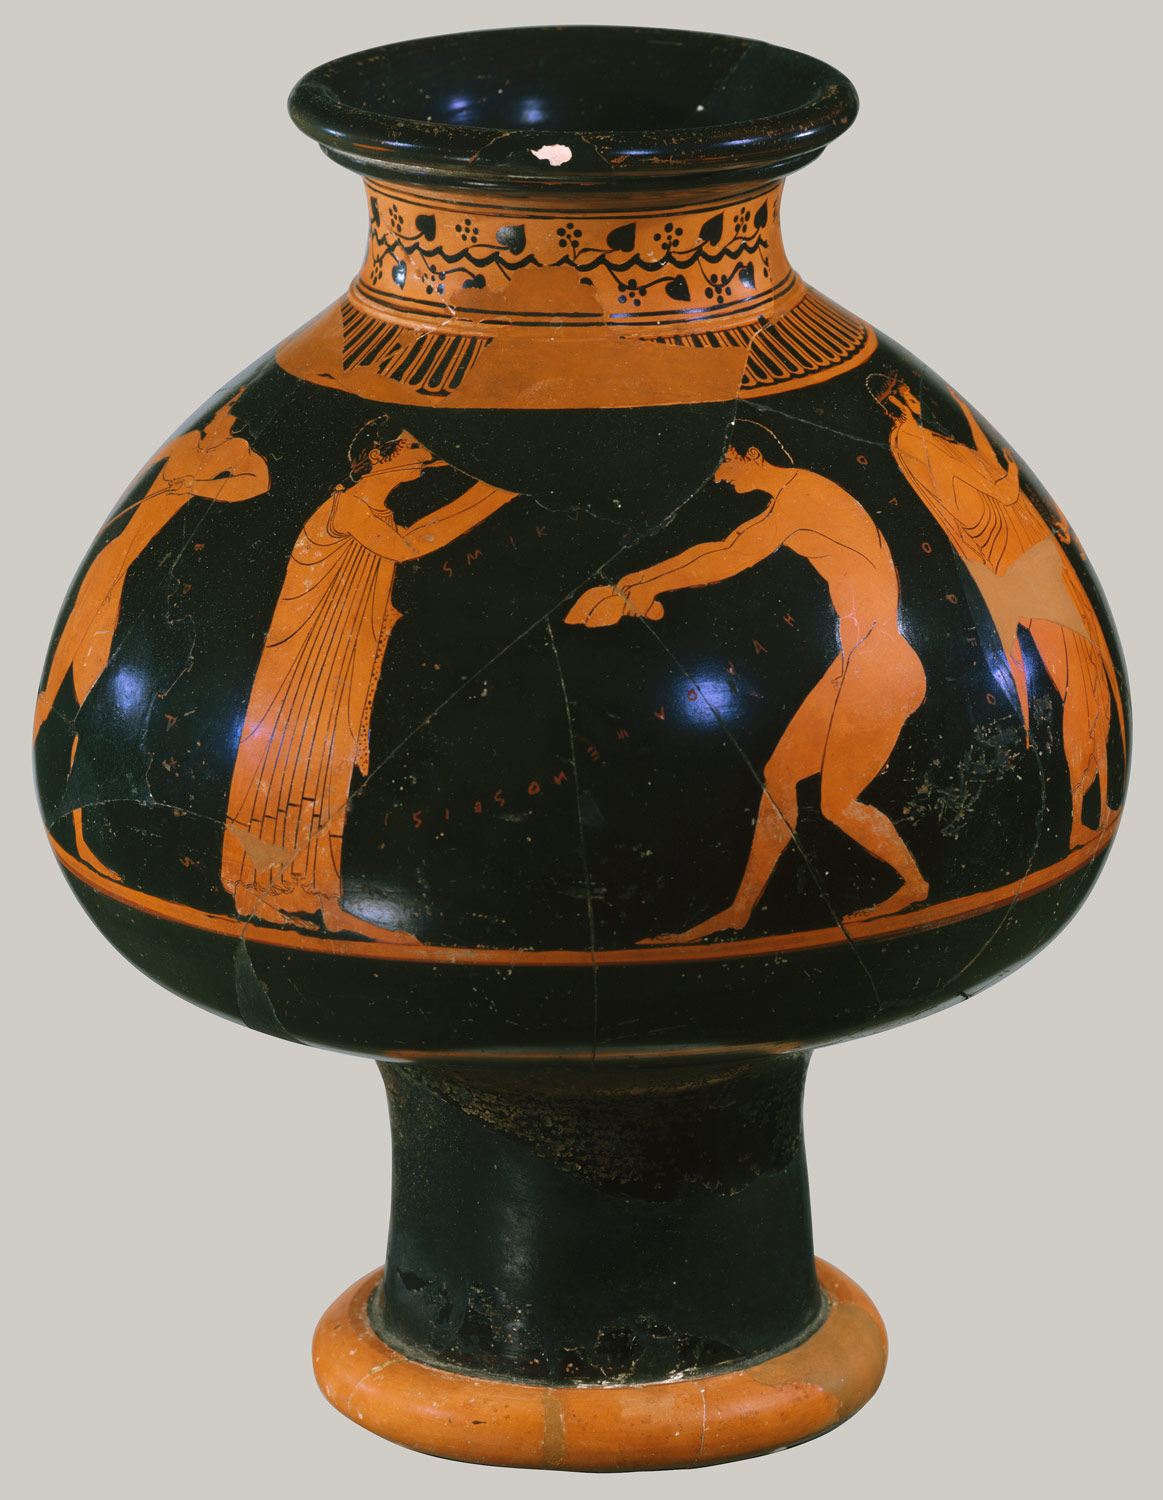 Terracotta Psykter Vase For Cooling Wine Attributed To